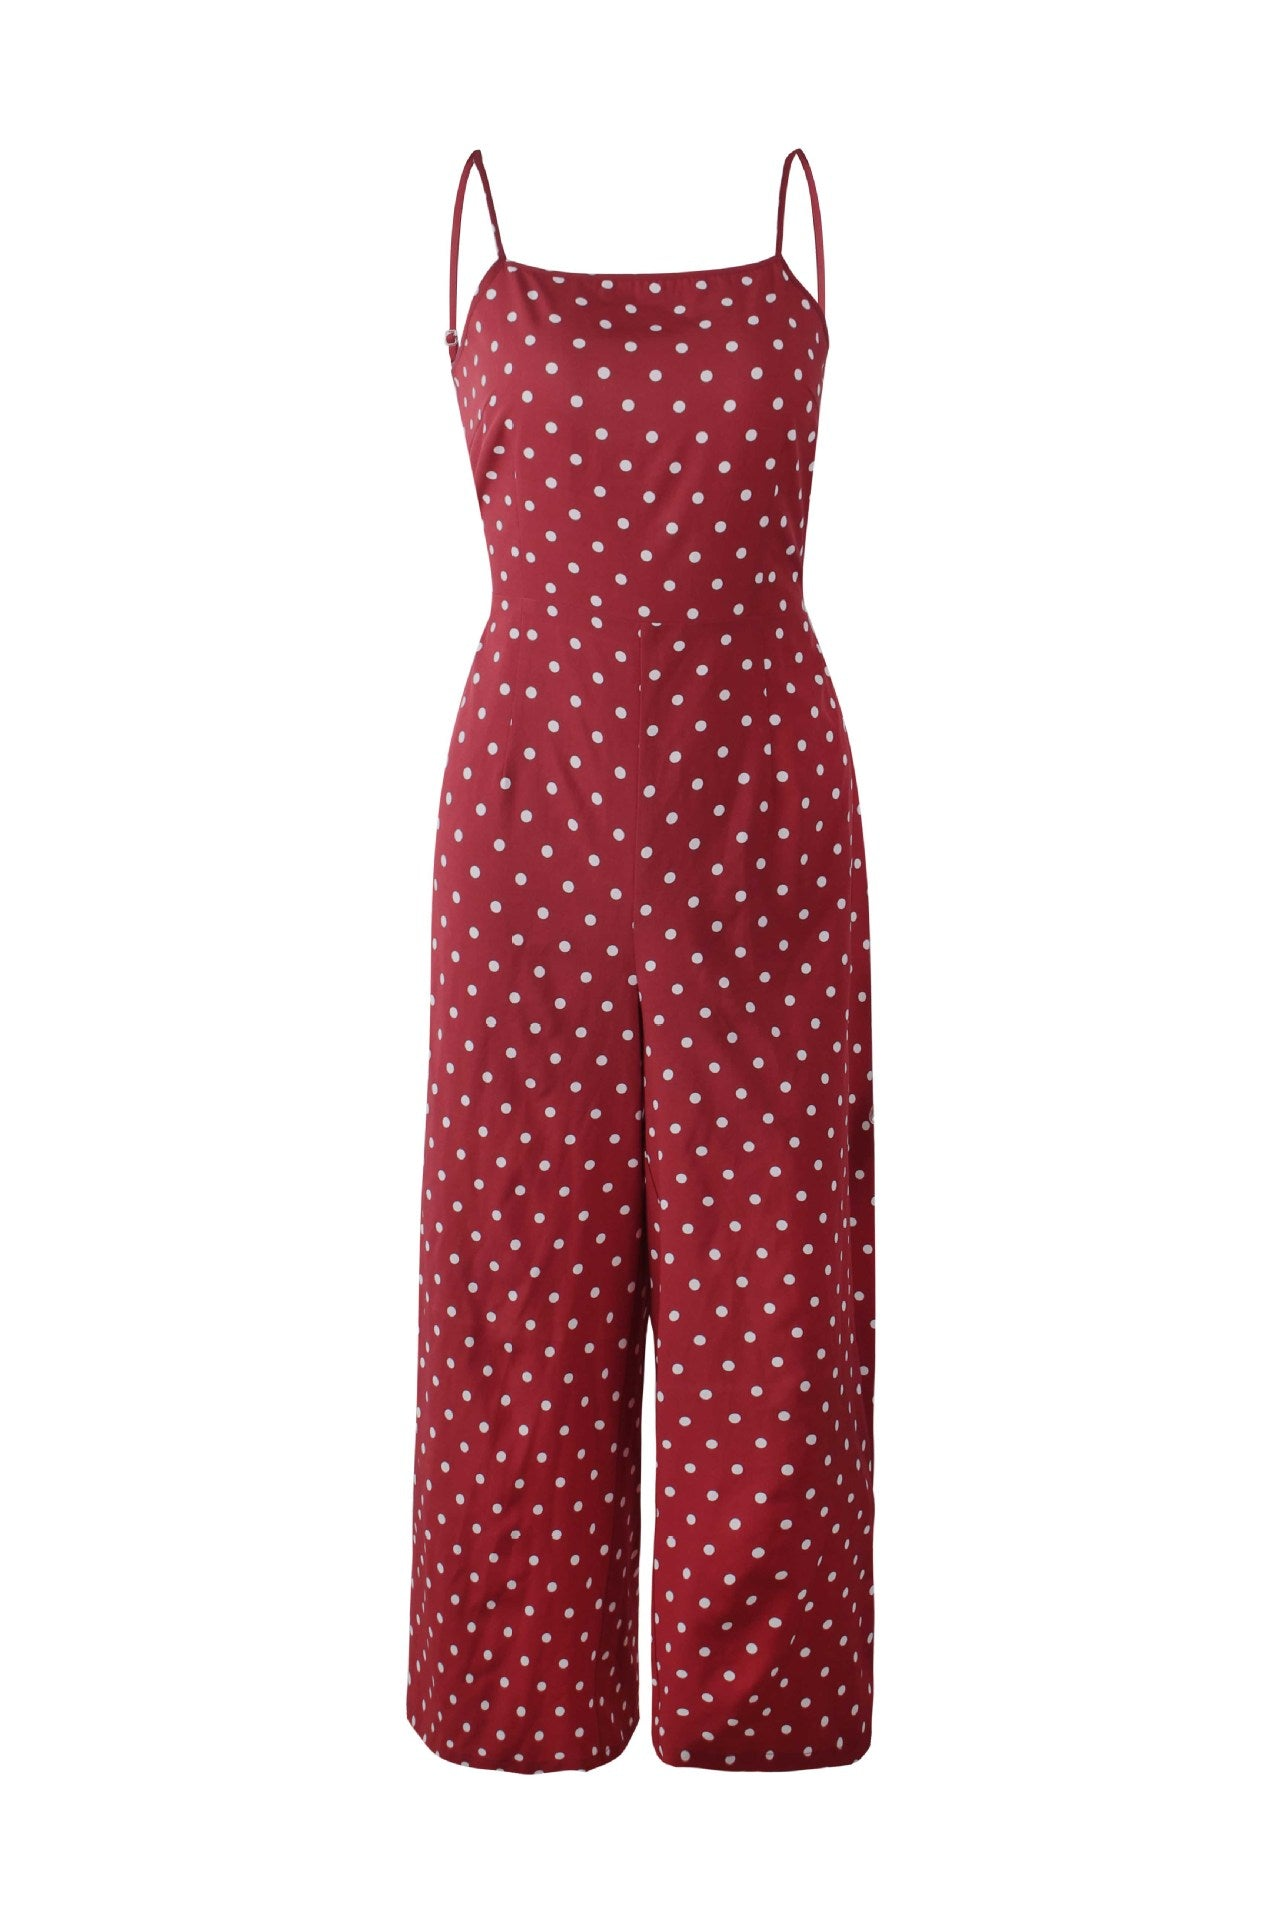 Red Jumpsuit Romper Polka Dot Print Sleeveless Open Back Bandage High Waist Wide Legs